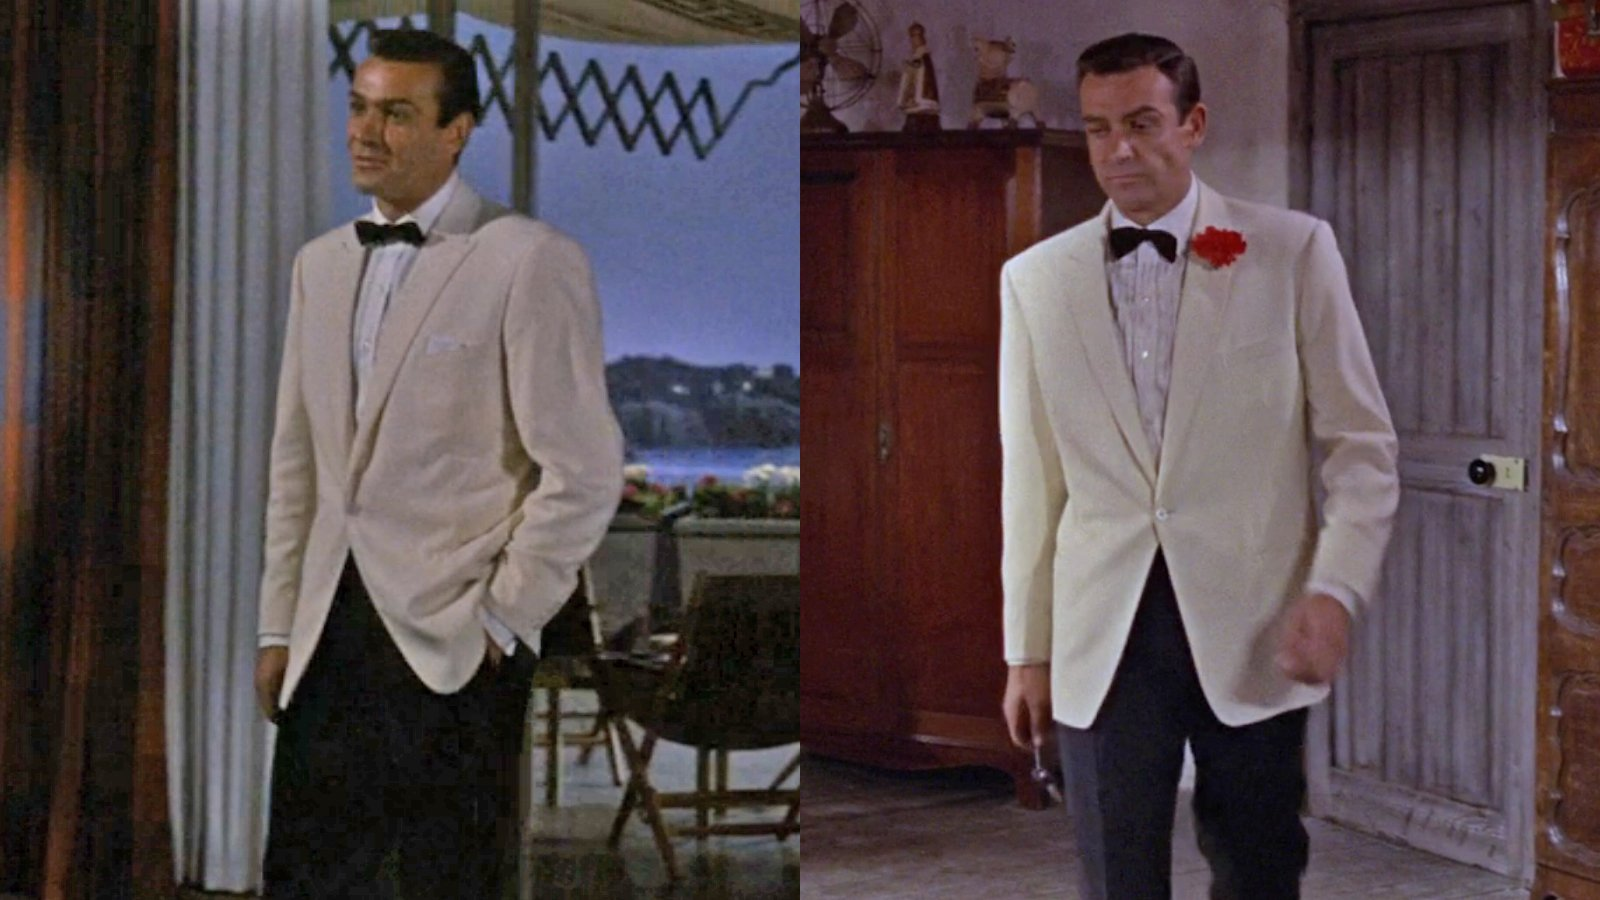 Sean Connery S Suits In Woman Of Straw Vs Goldfinger Bond Suits